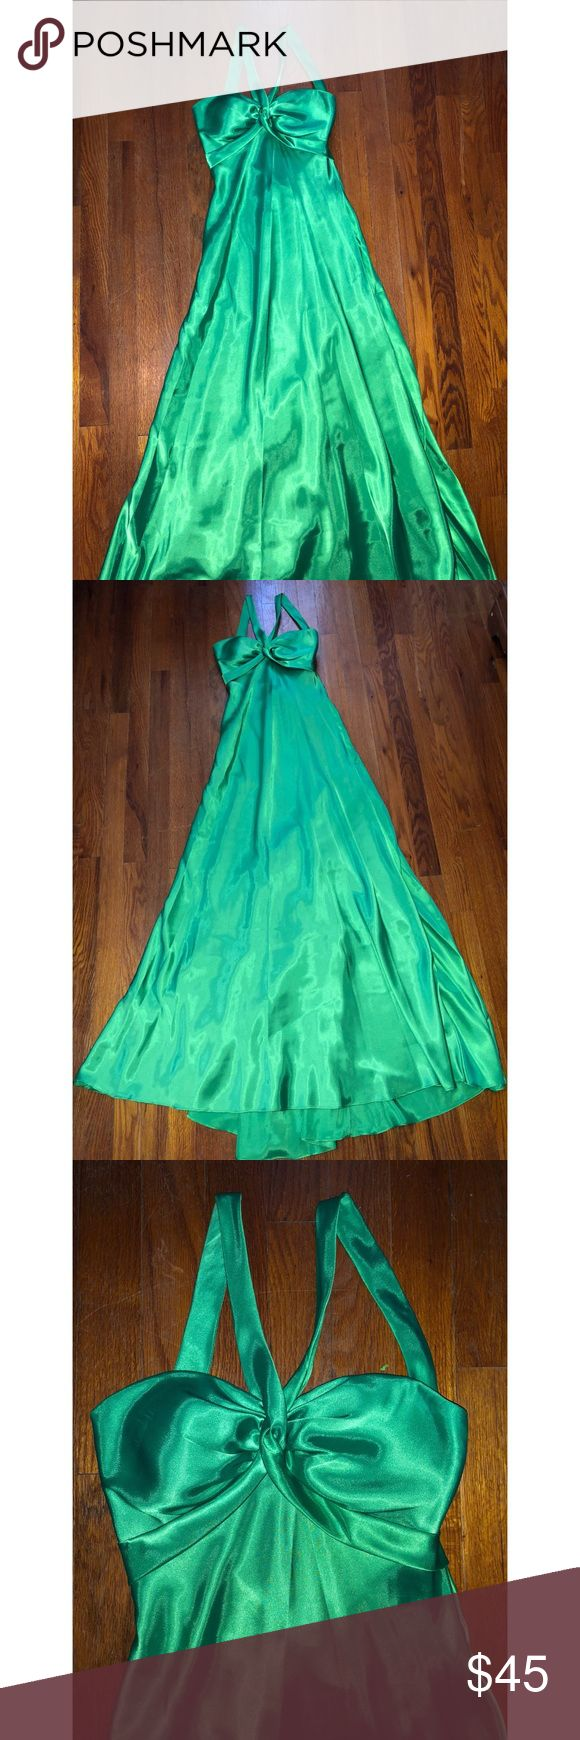 Emerald green formal dress Emerald green floor length formal dress. Fun criss cross straps in back. Worn once-excellent condition. Size is 5/6 but fits like 2/4. Minimal train in back. Dresses Prom